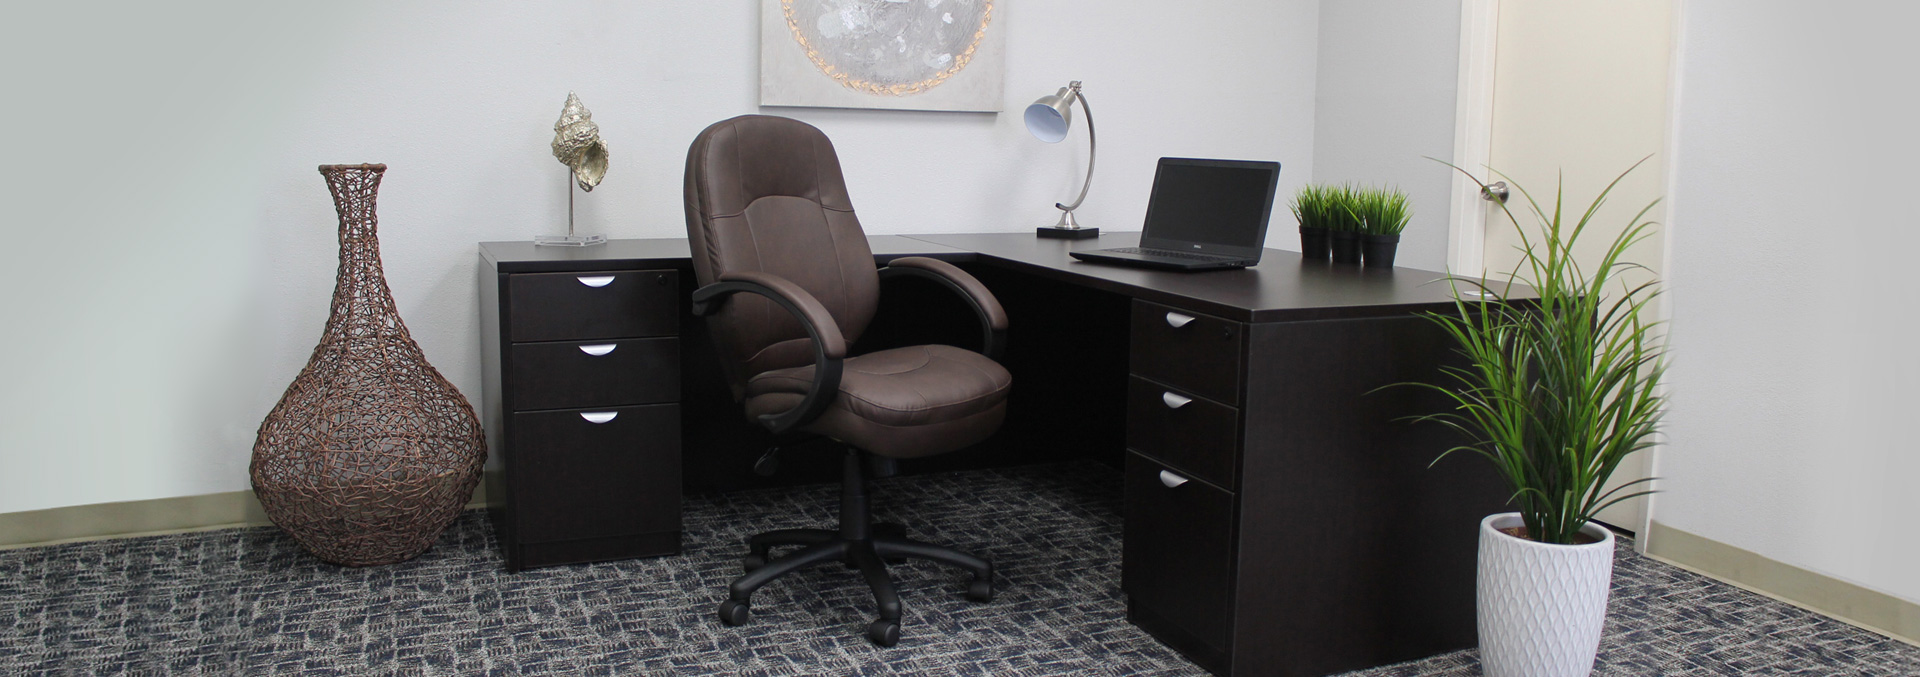 office desk for 2 master bedroom about us contact become dealer bosschair norstar company